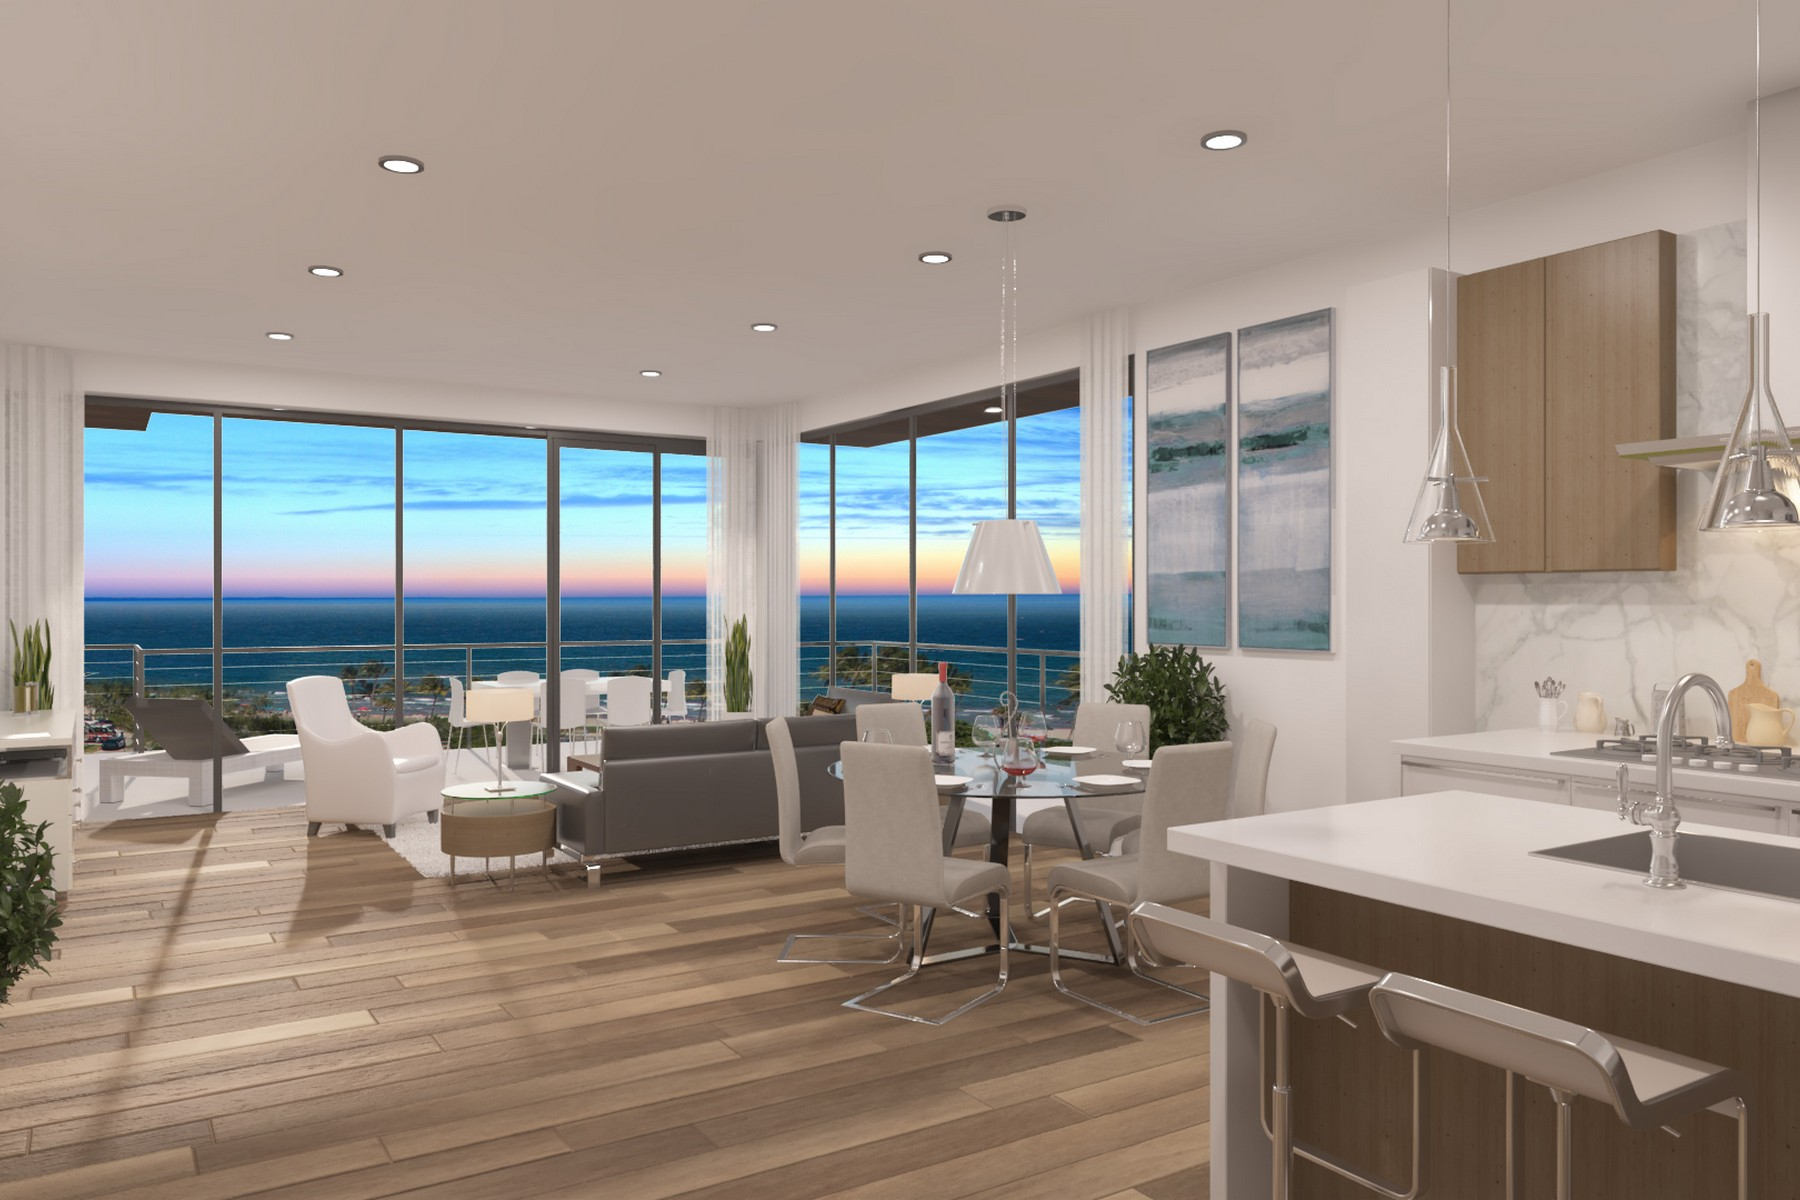 Copropriété pour l Vente à 120 S Ocean Dr , 4 South, Deerfield Beach, FL 3344 120 S Ocean Dr 4 South, Deerfield Beach, Florida, 33441 États-Unis